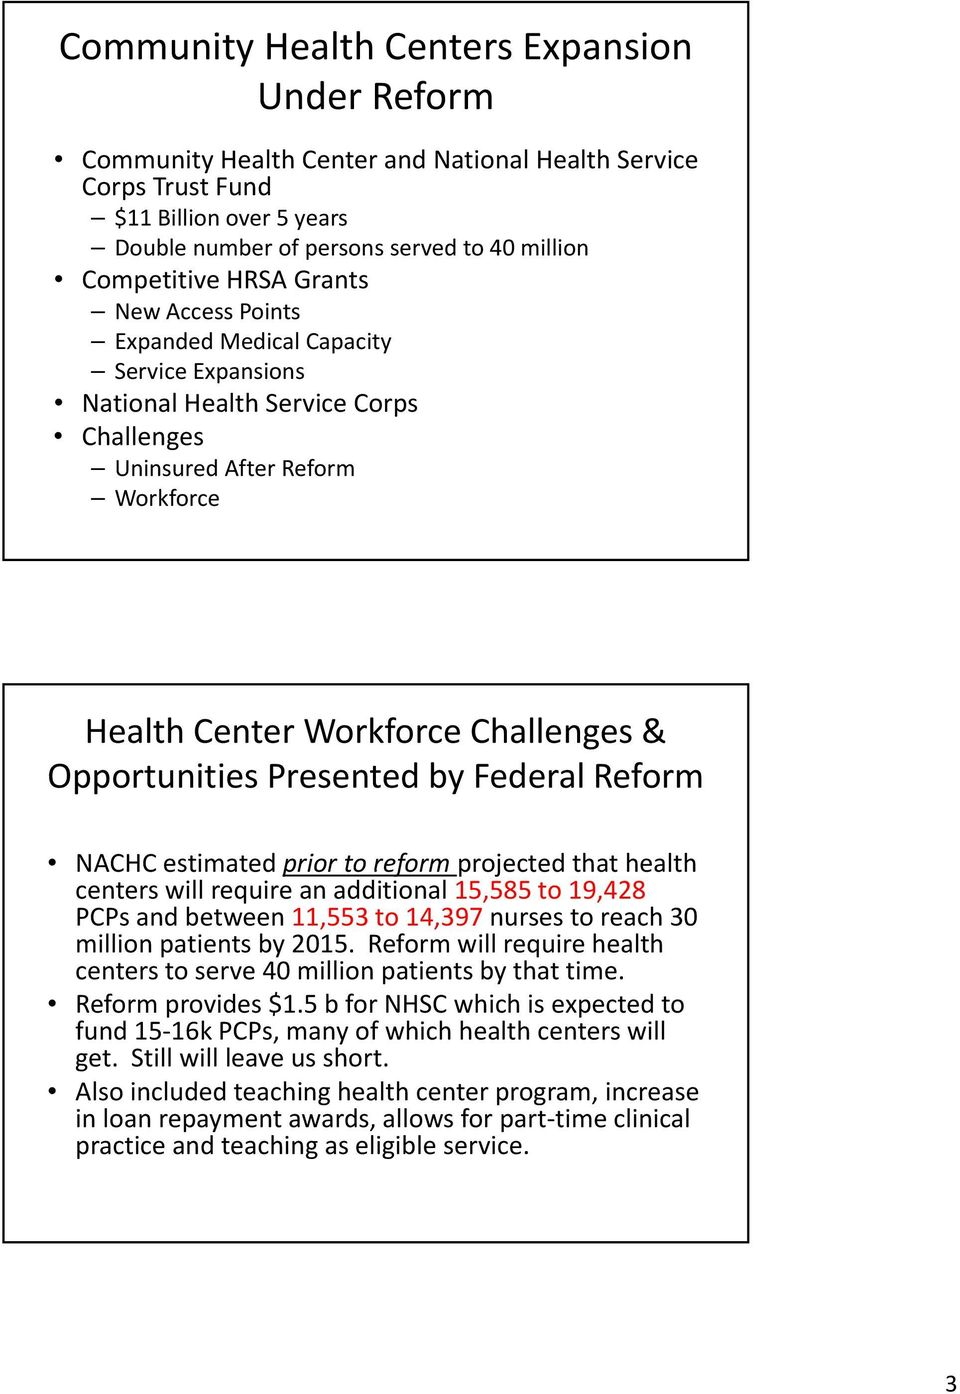 Presented by Federal Reform NACHC estimatedprior to reform projected that health centers will require an additional 15,585 to 19,428 PCPs and between 11,553 to 14,397 nurses to reach 30 million